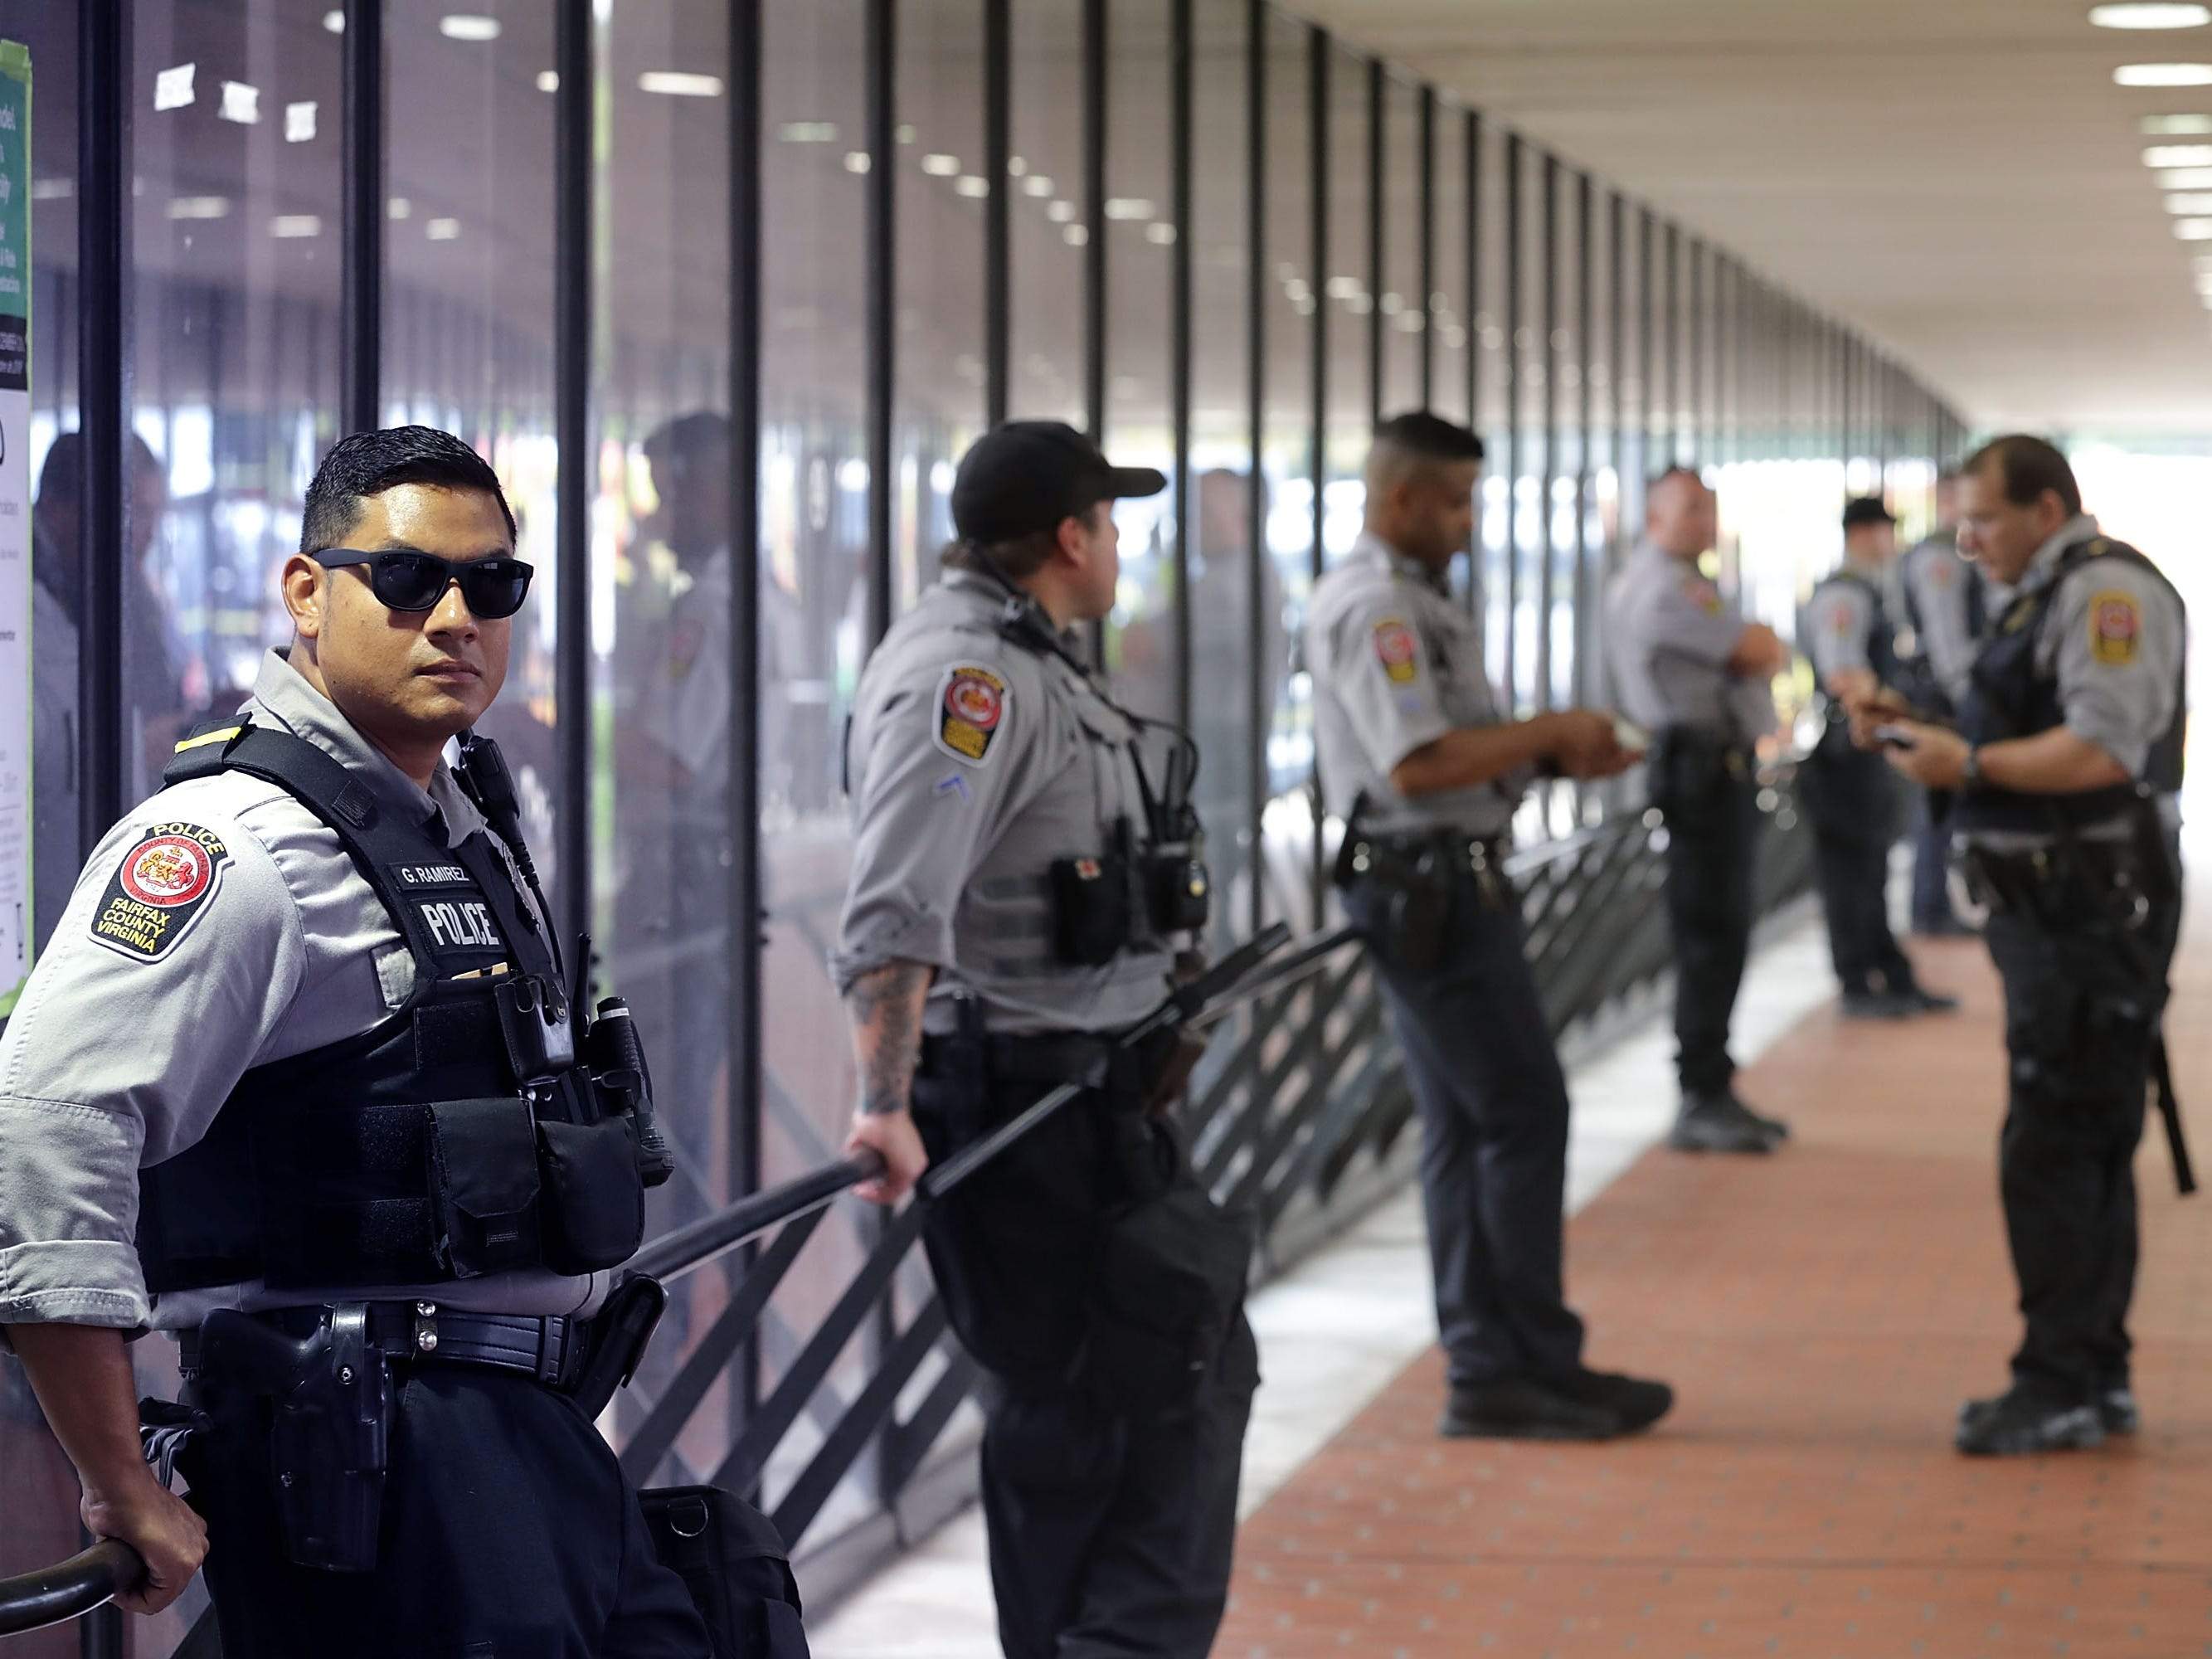 Police stand watch at the Vienna/Fairfax Ñ GMU Metro Station in anticipation of the arrival of the white supremacist Unite the Right participants who plan to gather at the station before traveling to the White House Aug. 12, 2018 in Vienna, Va.